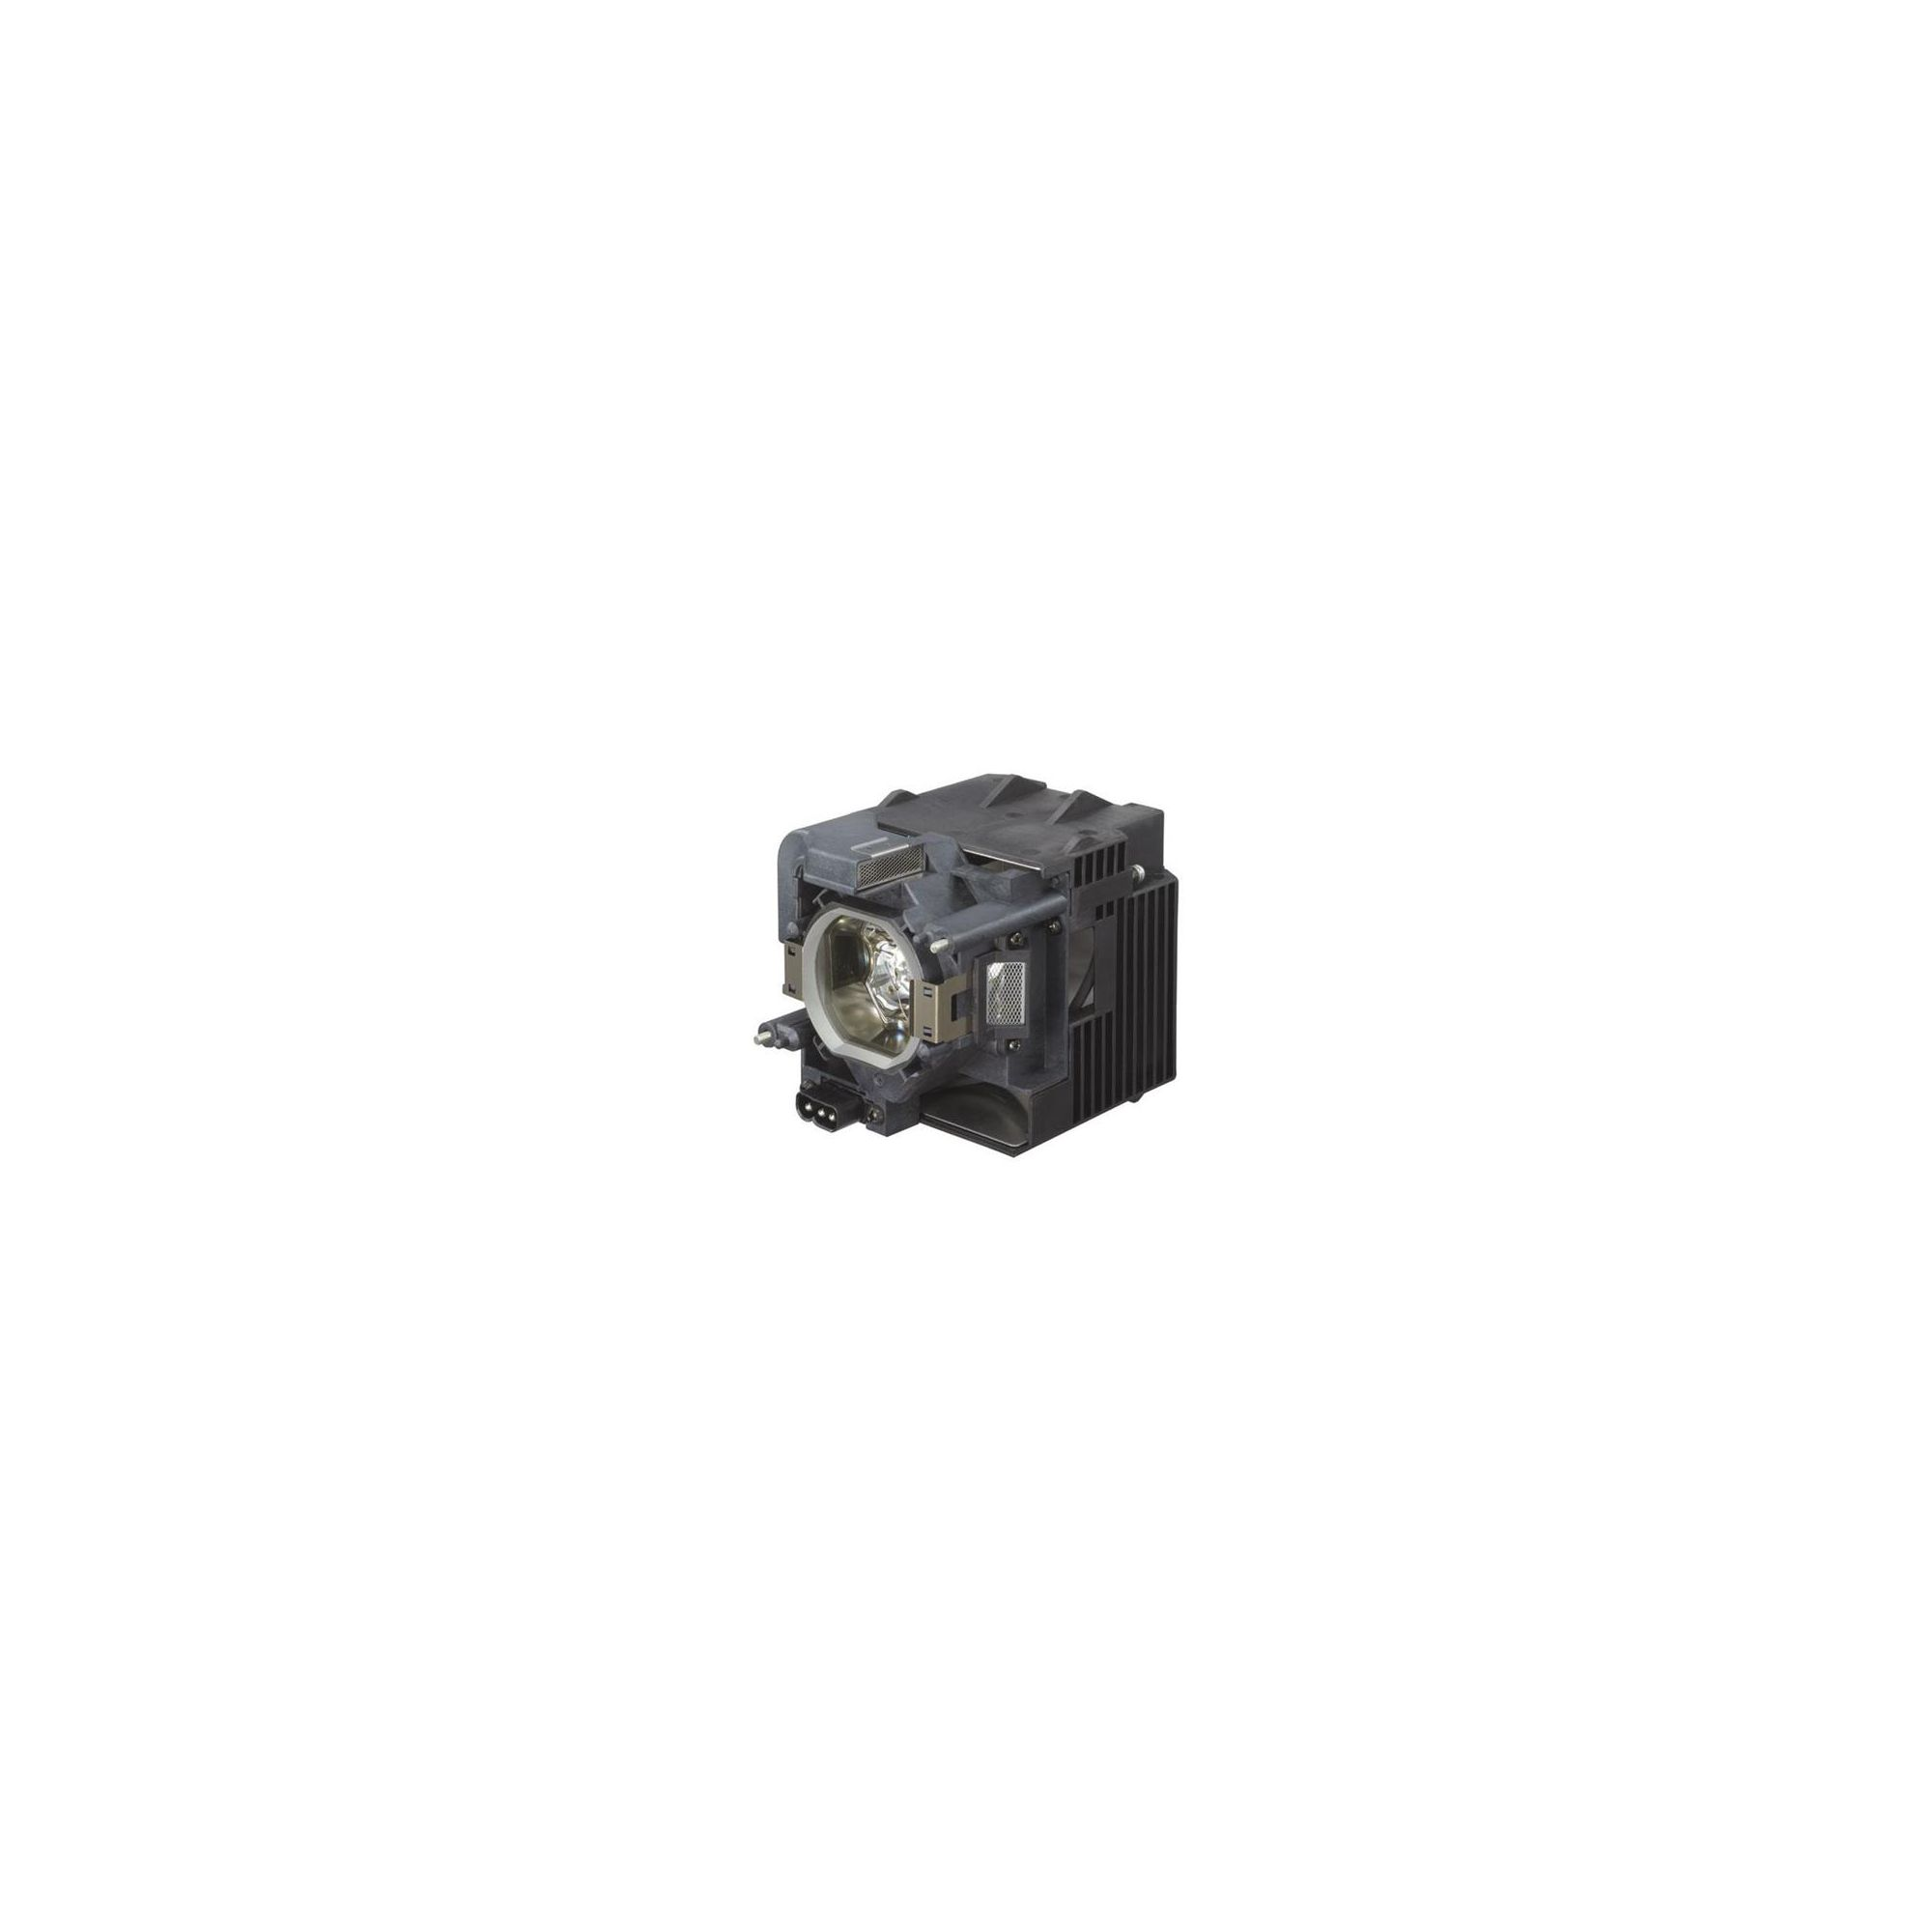 Sony LMP-F270 Replacement Projector Lamp for VPL-FE40, VPL-FX40 and VPL-FX41 at Tesco Direct